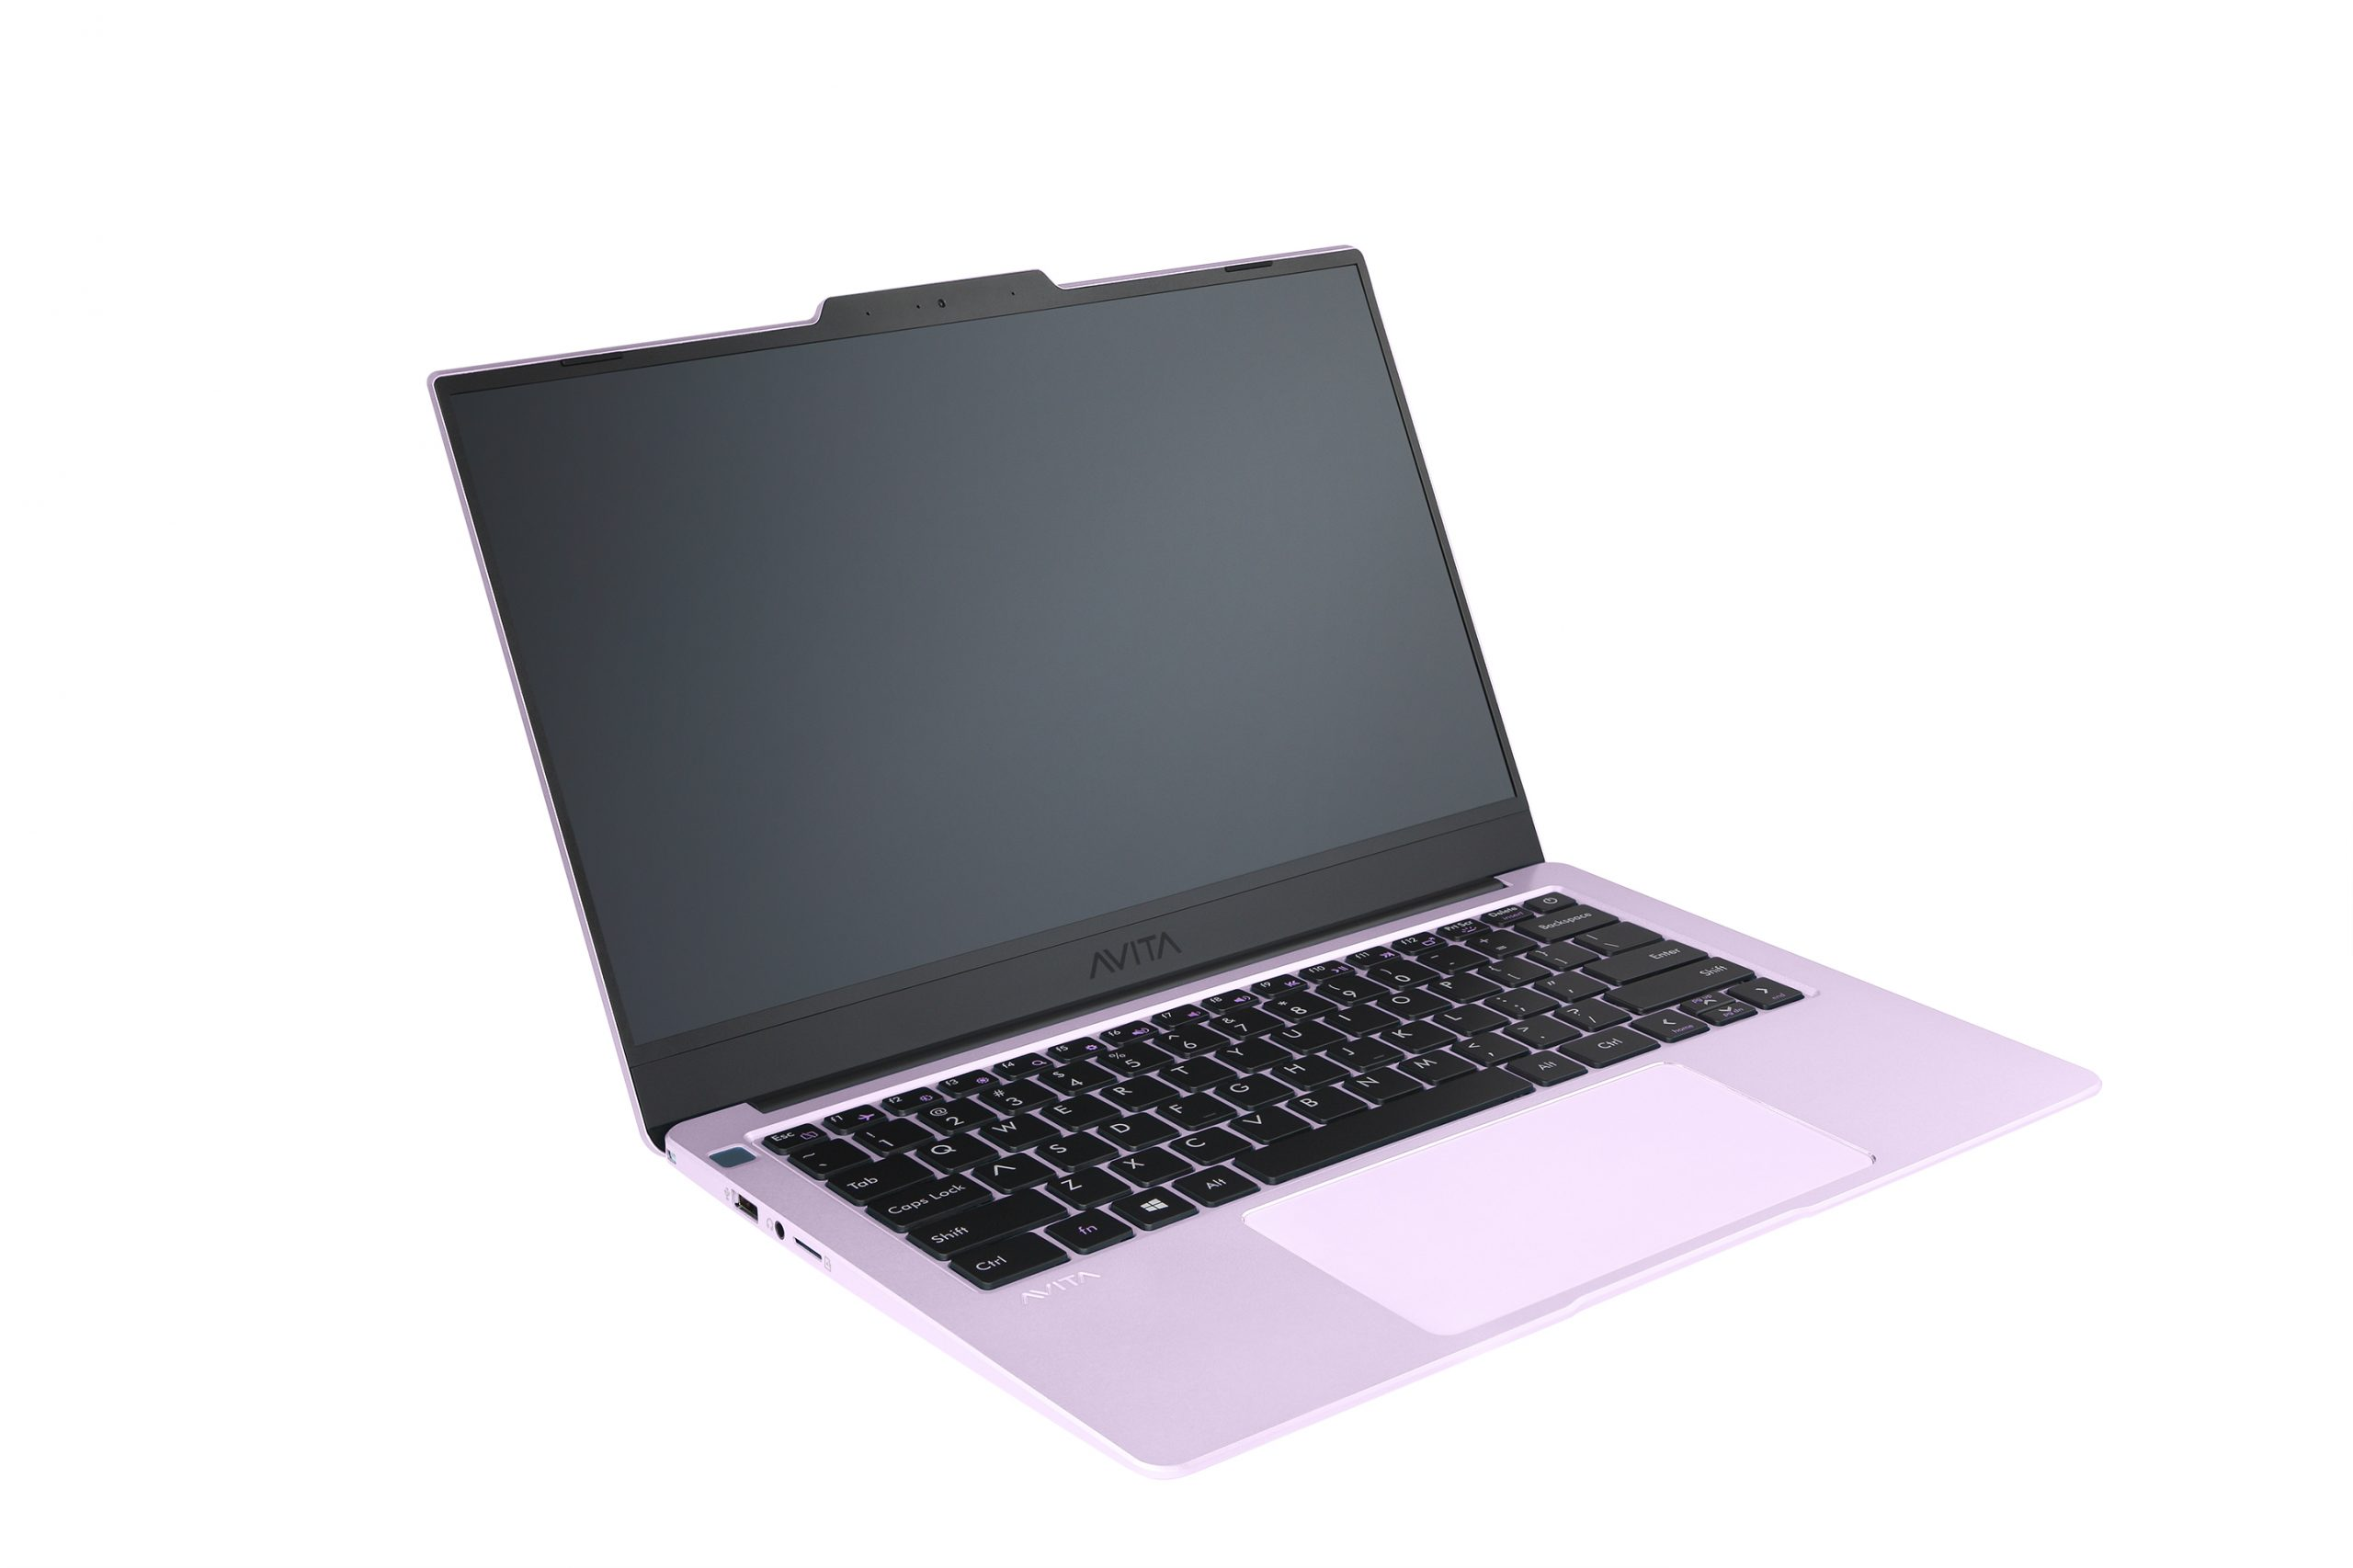 https://t2qwifi.com/wp-content/uploads/2020/07/avita_laptop_2020_angle1_0027_high_fragrant-lilac-scaled.jpg